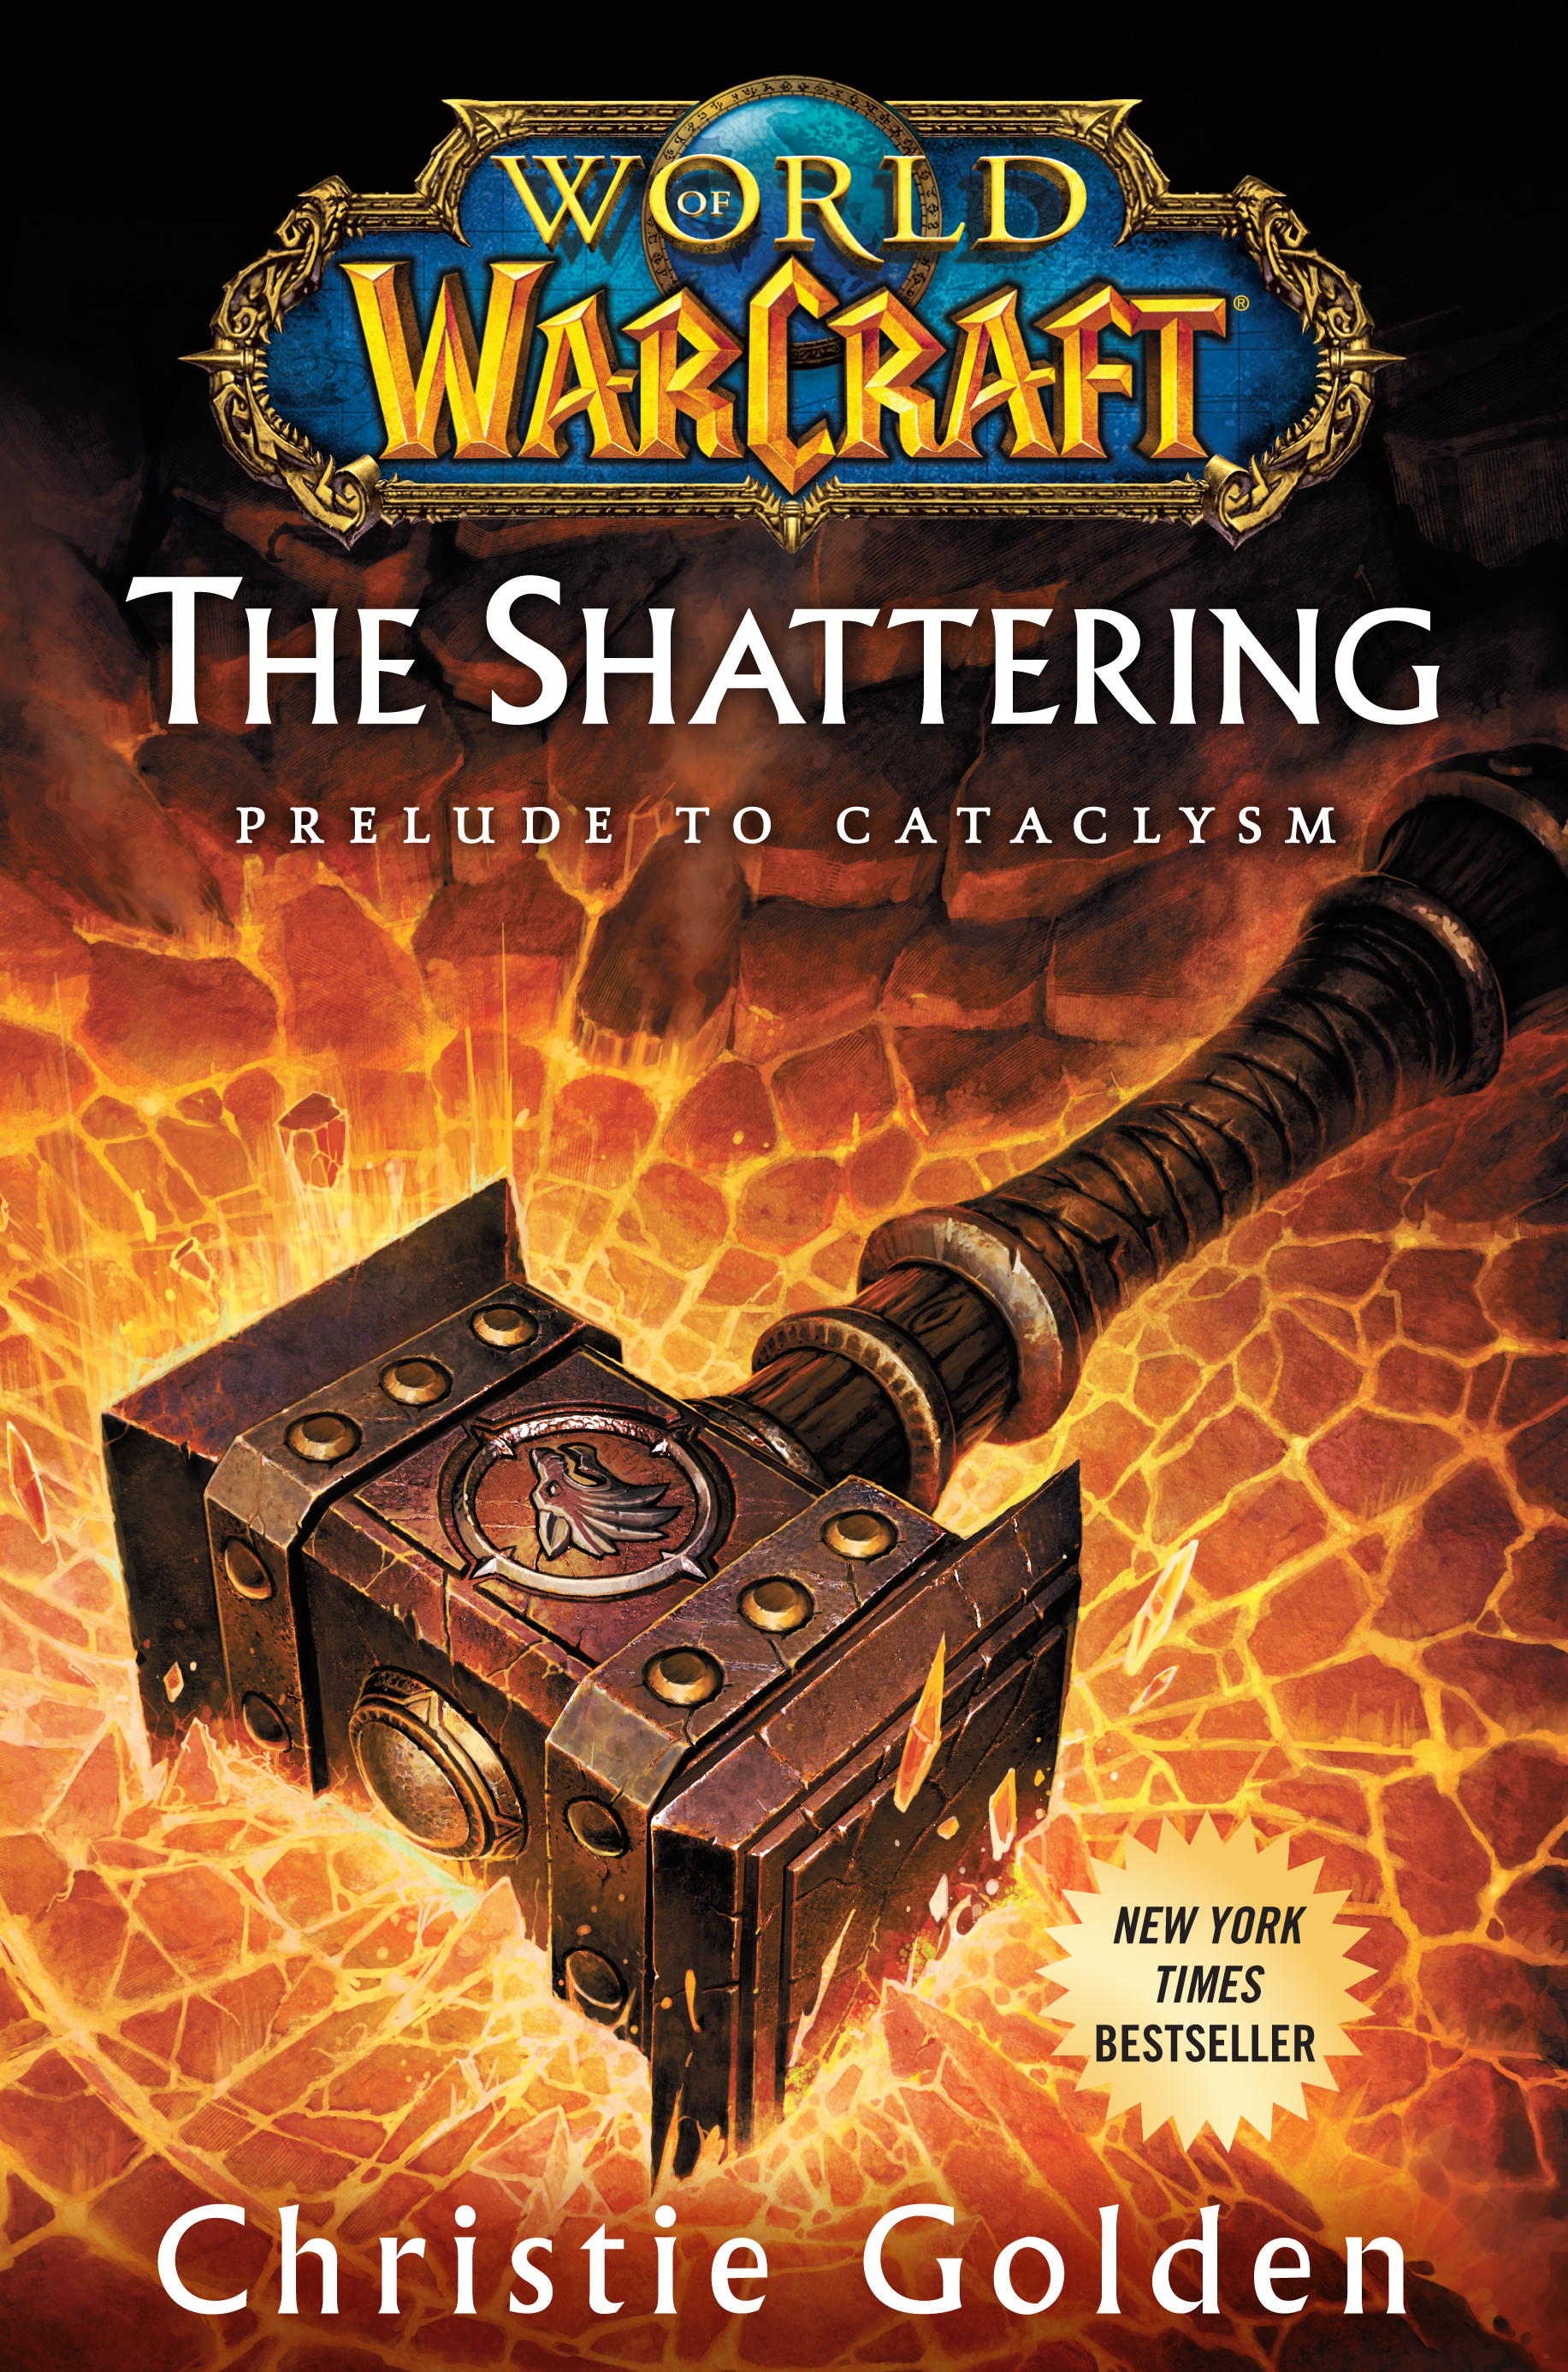 World of Warcraft: The Shattering By: Christie Golden